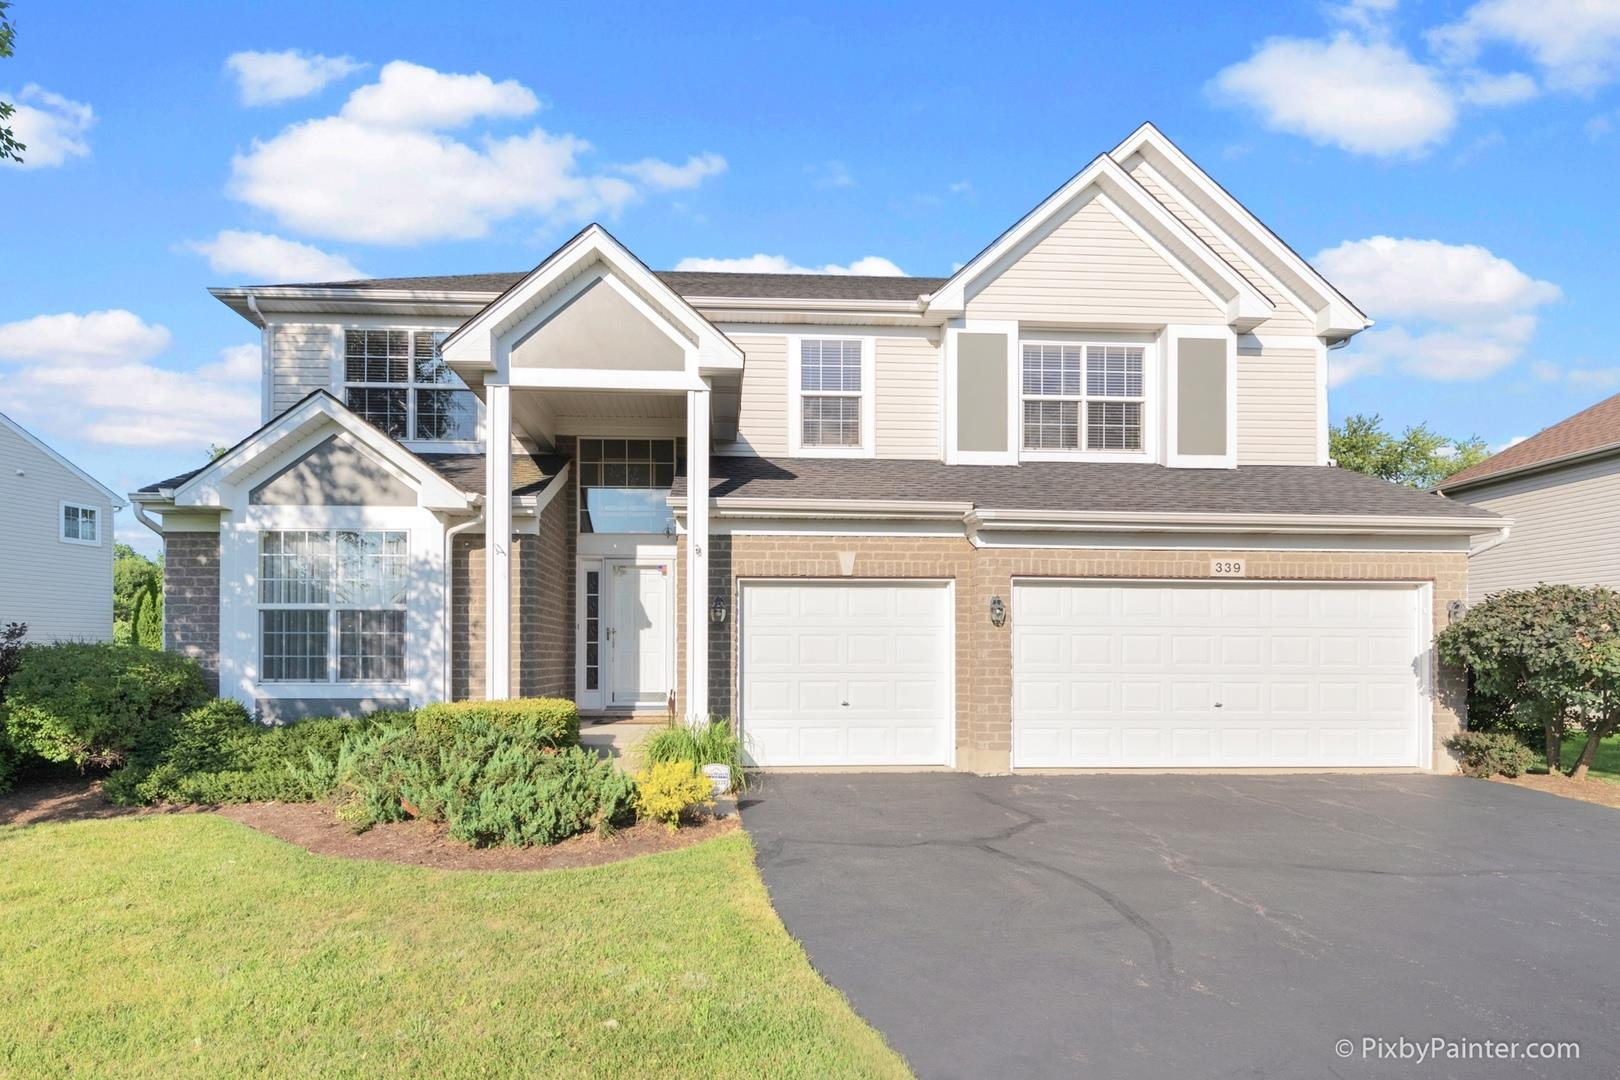 339 Kingsport Court, Crystal Lake, IL 60012 - #: 10468163